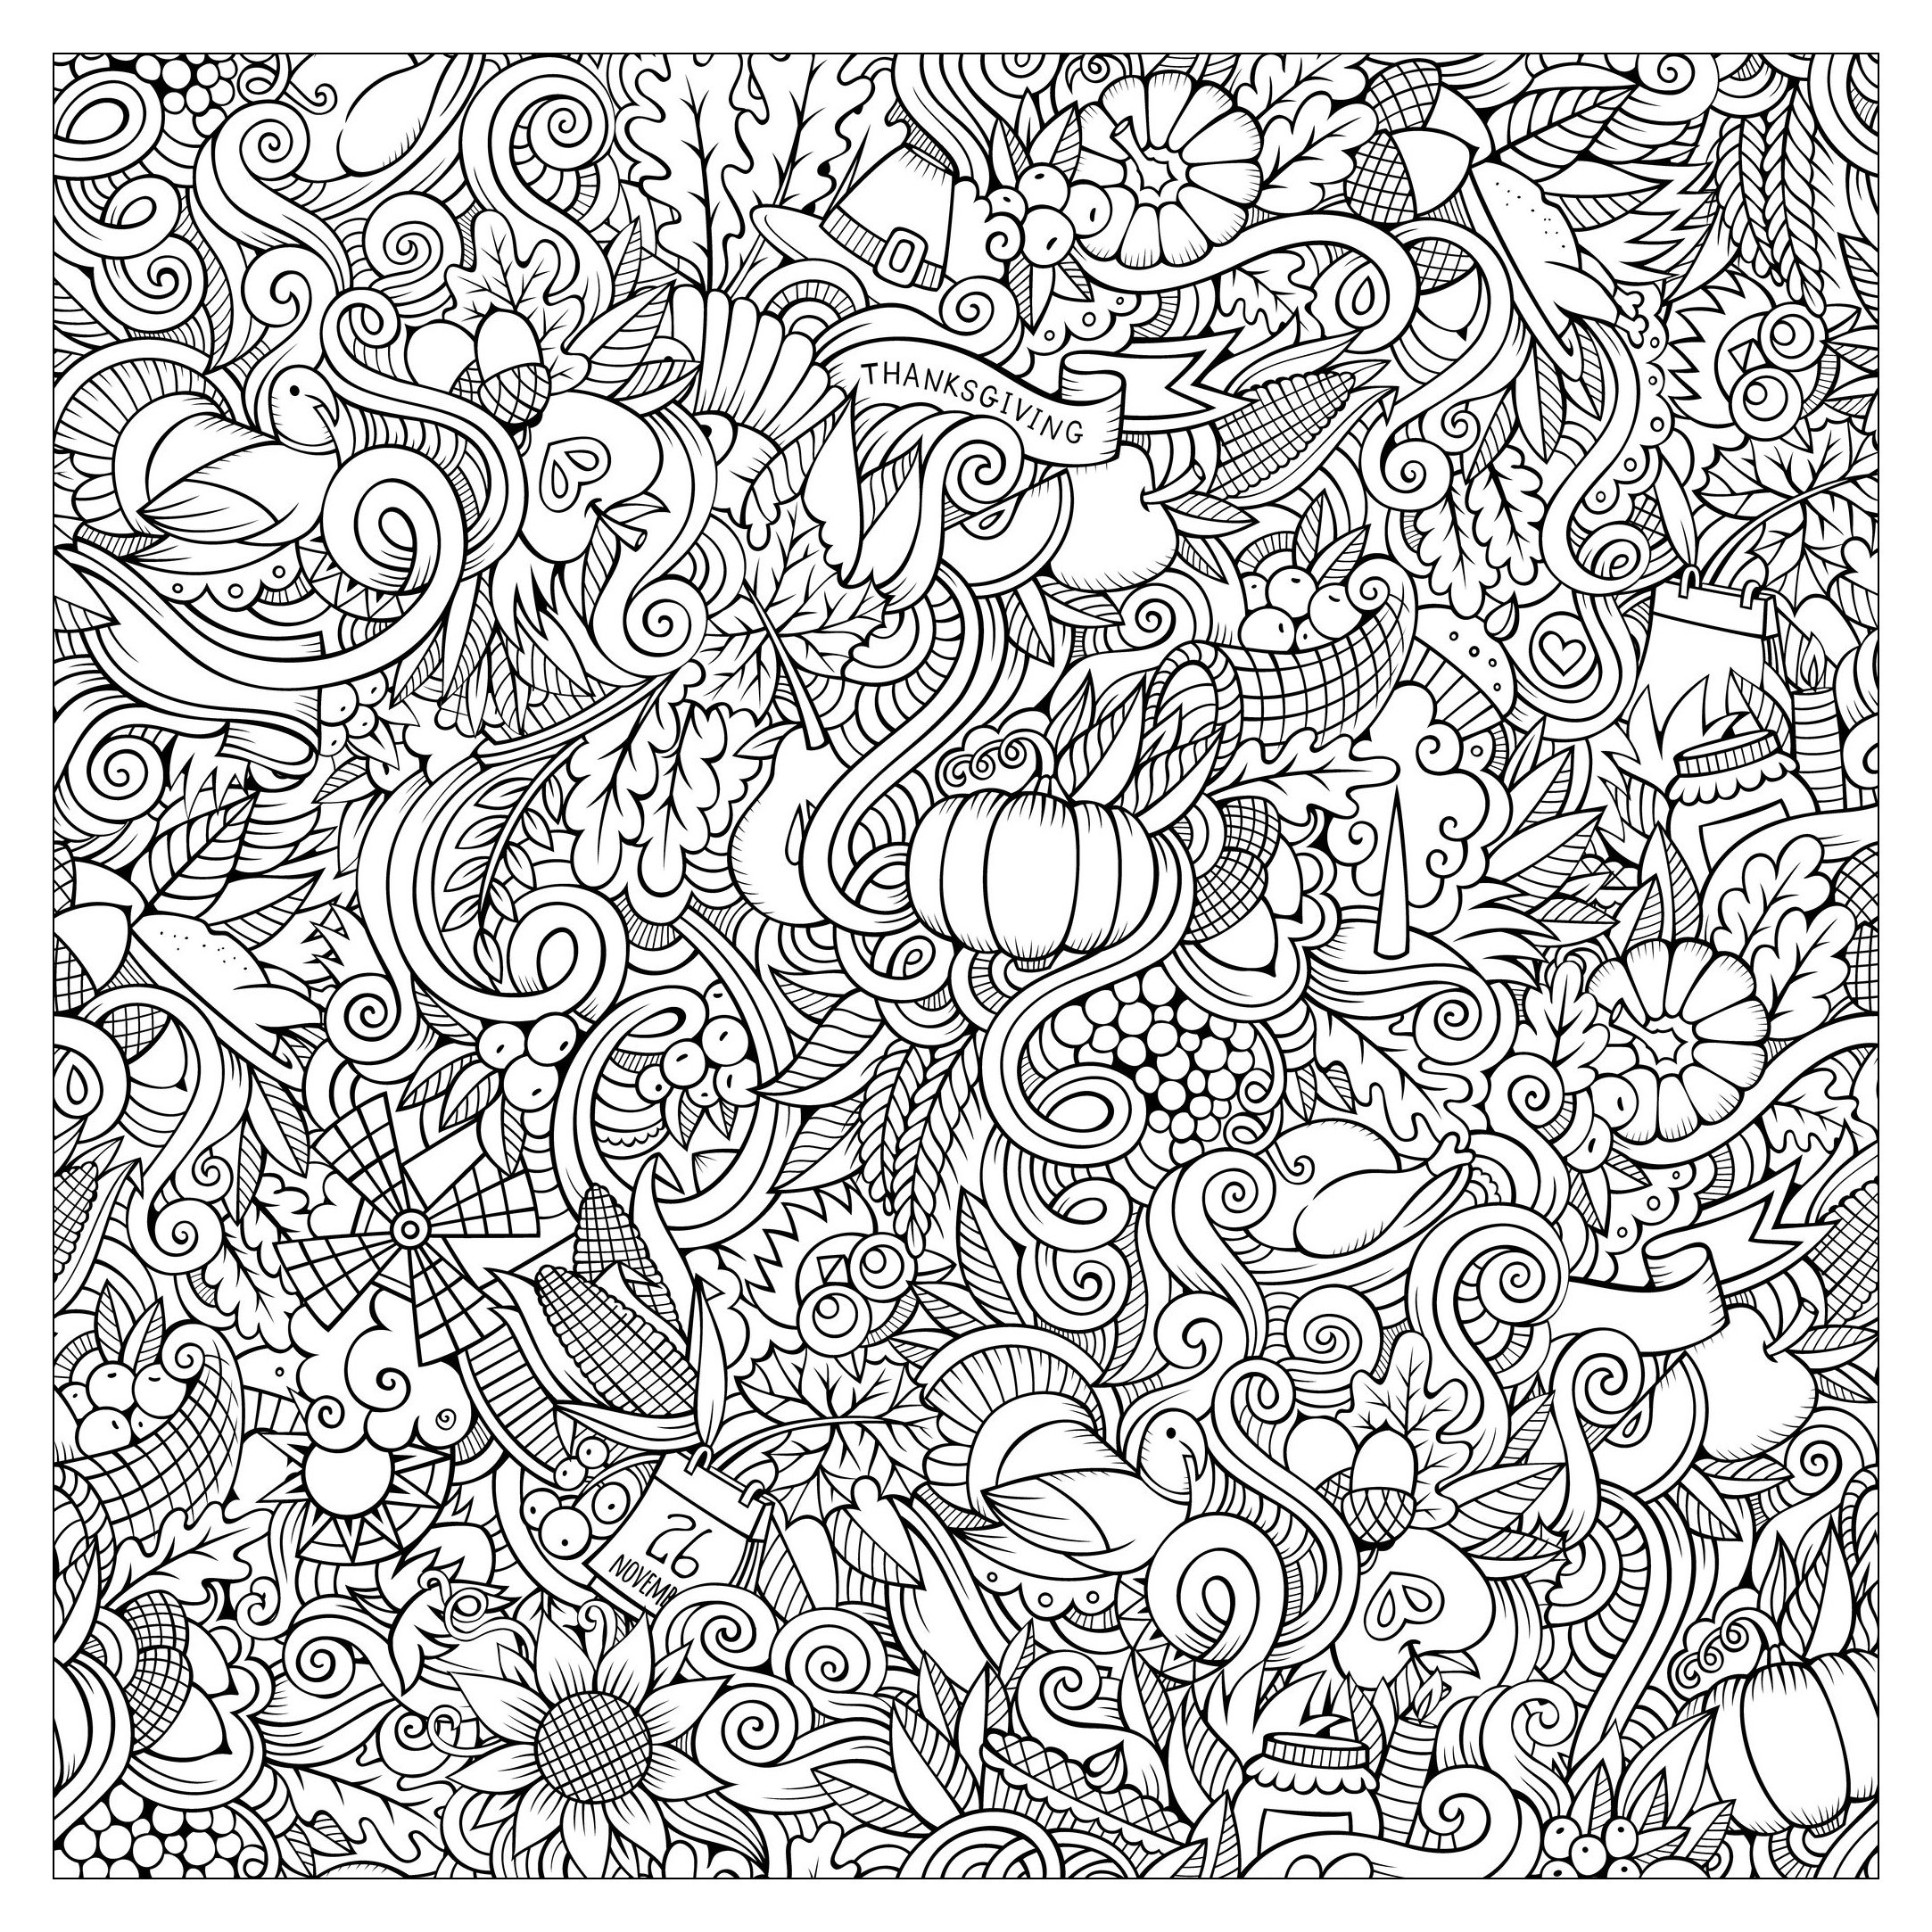 Thanksgiving Coloring Pages For Adults Free  Thanksgiving Coloring Pages For Adults Coloring Home